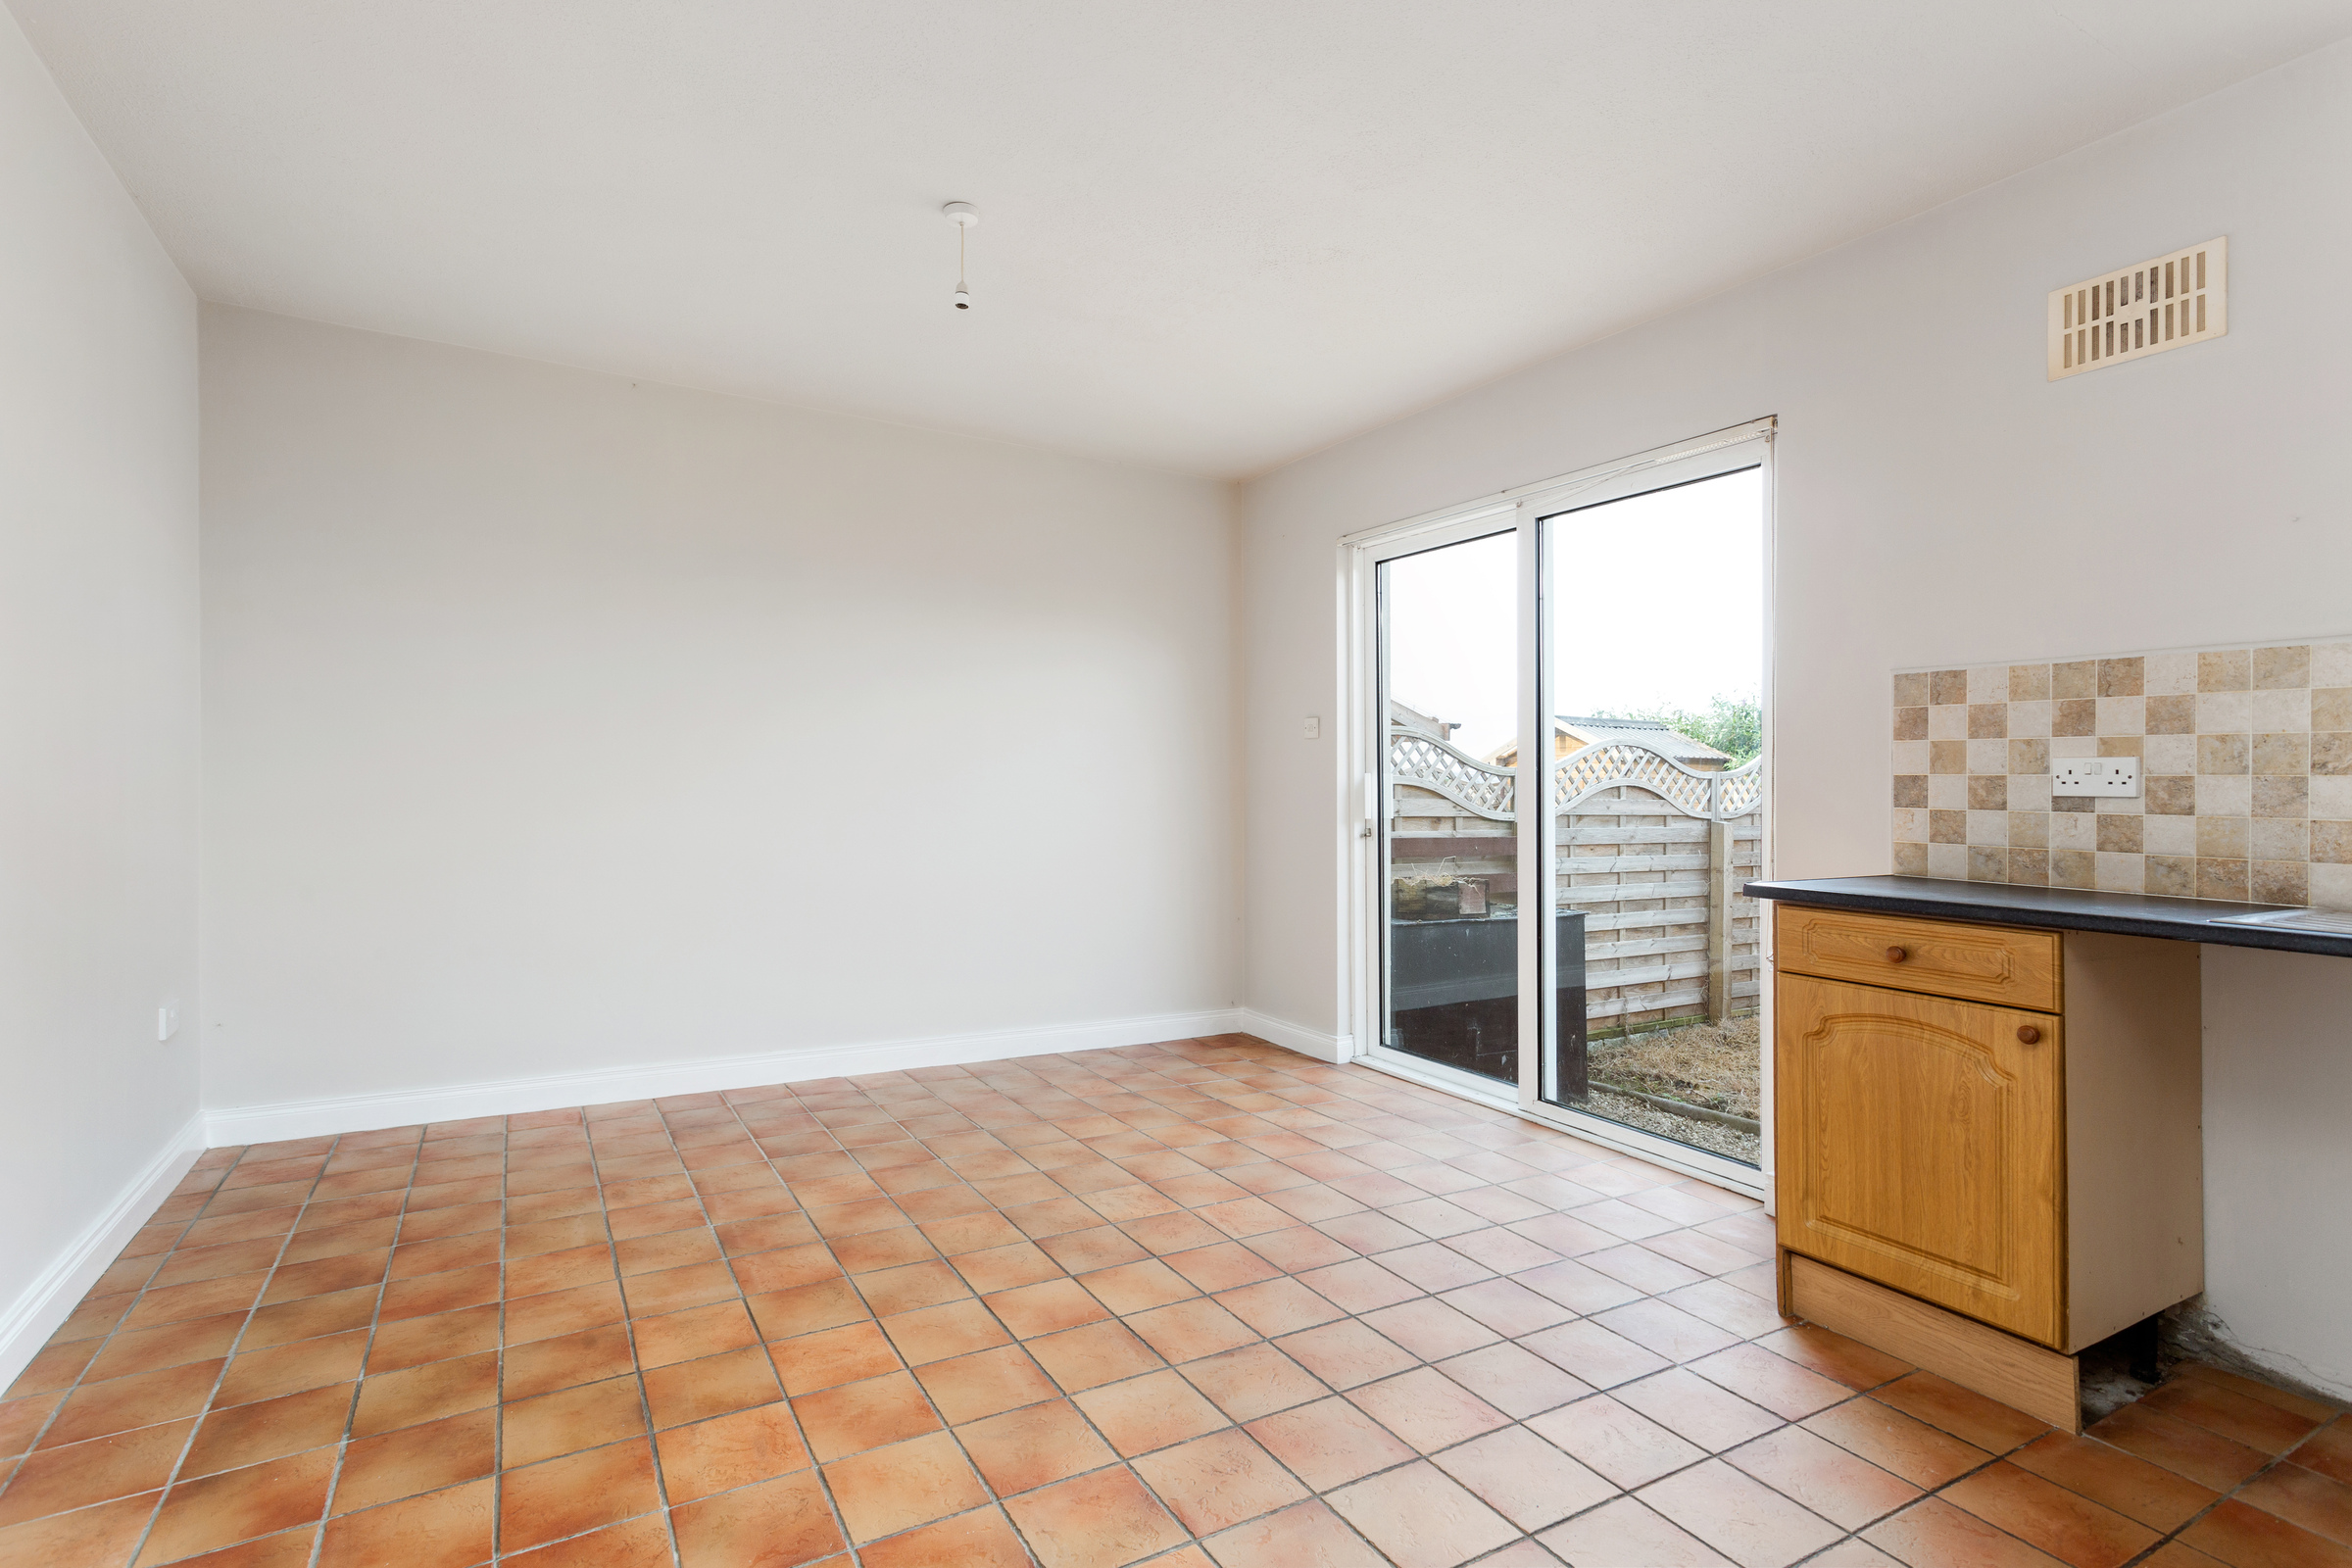 168 The Courtyard, Rose Hill, Wicklow Town, Co. Wicklow